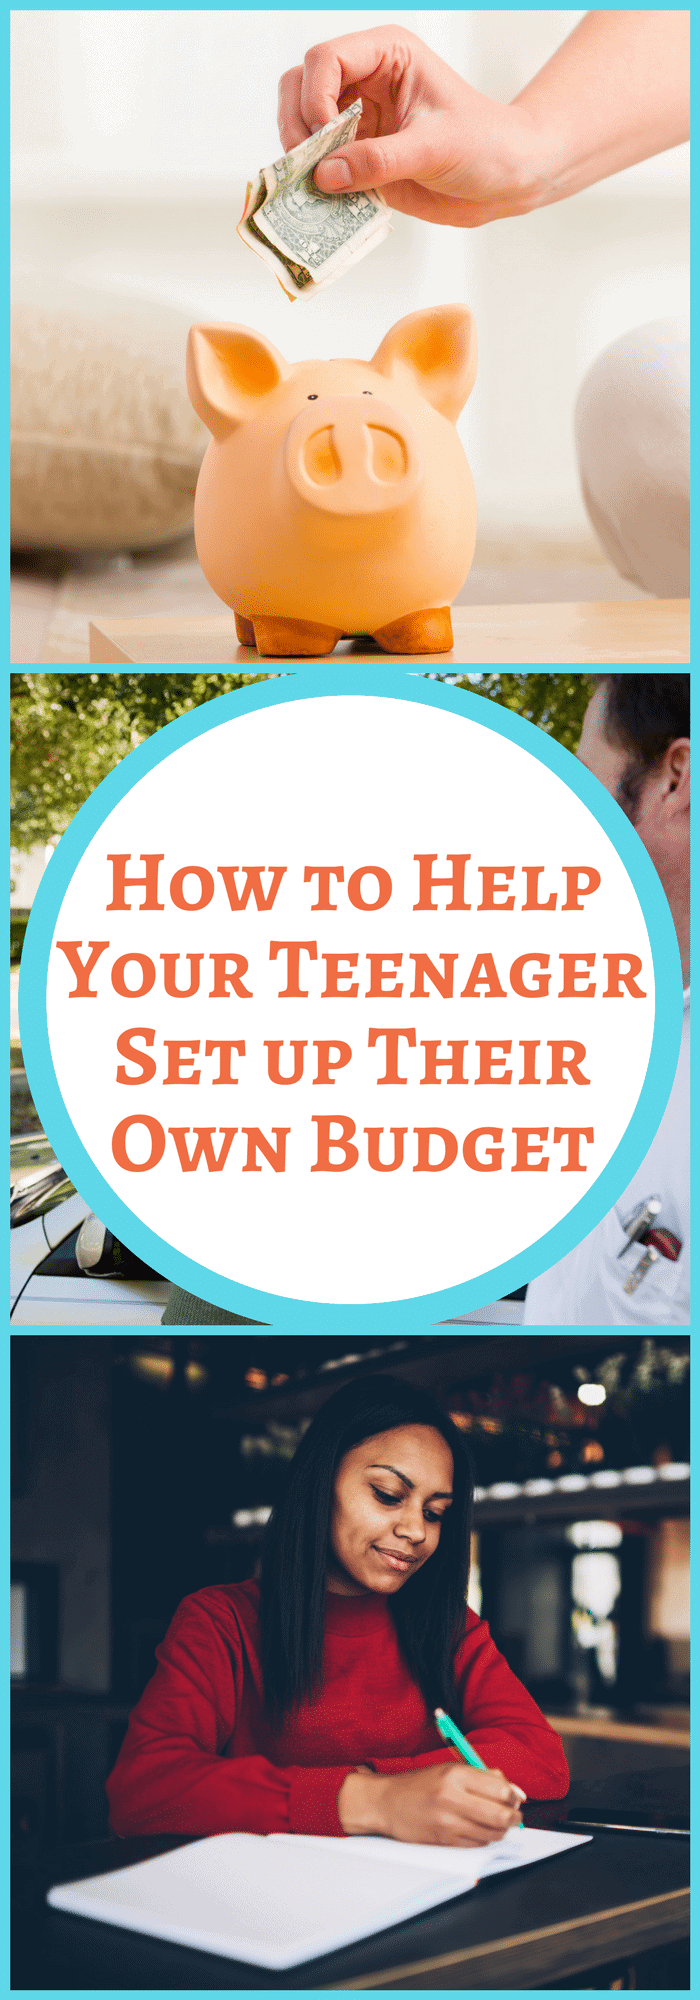 Budgeting--How to Help Your Teenager Set Up Their Own Budget--The Organized Mom